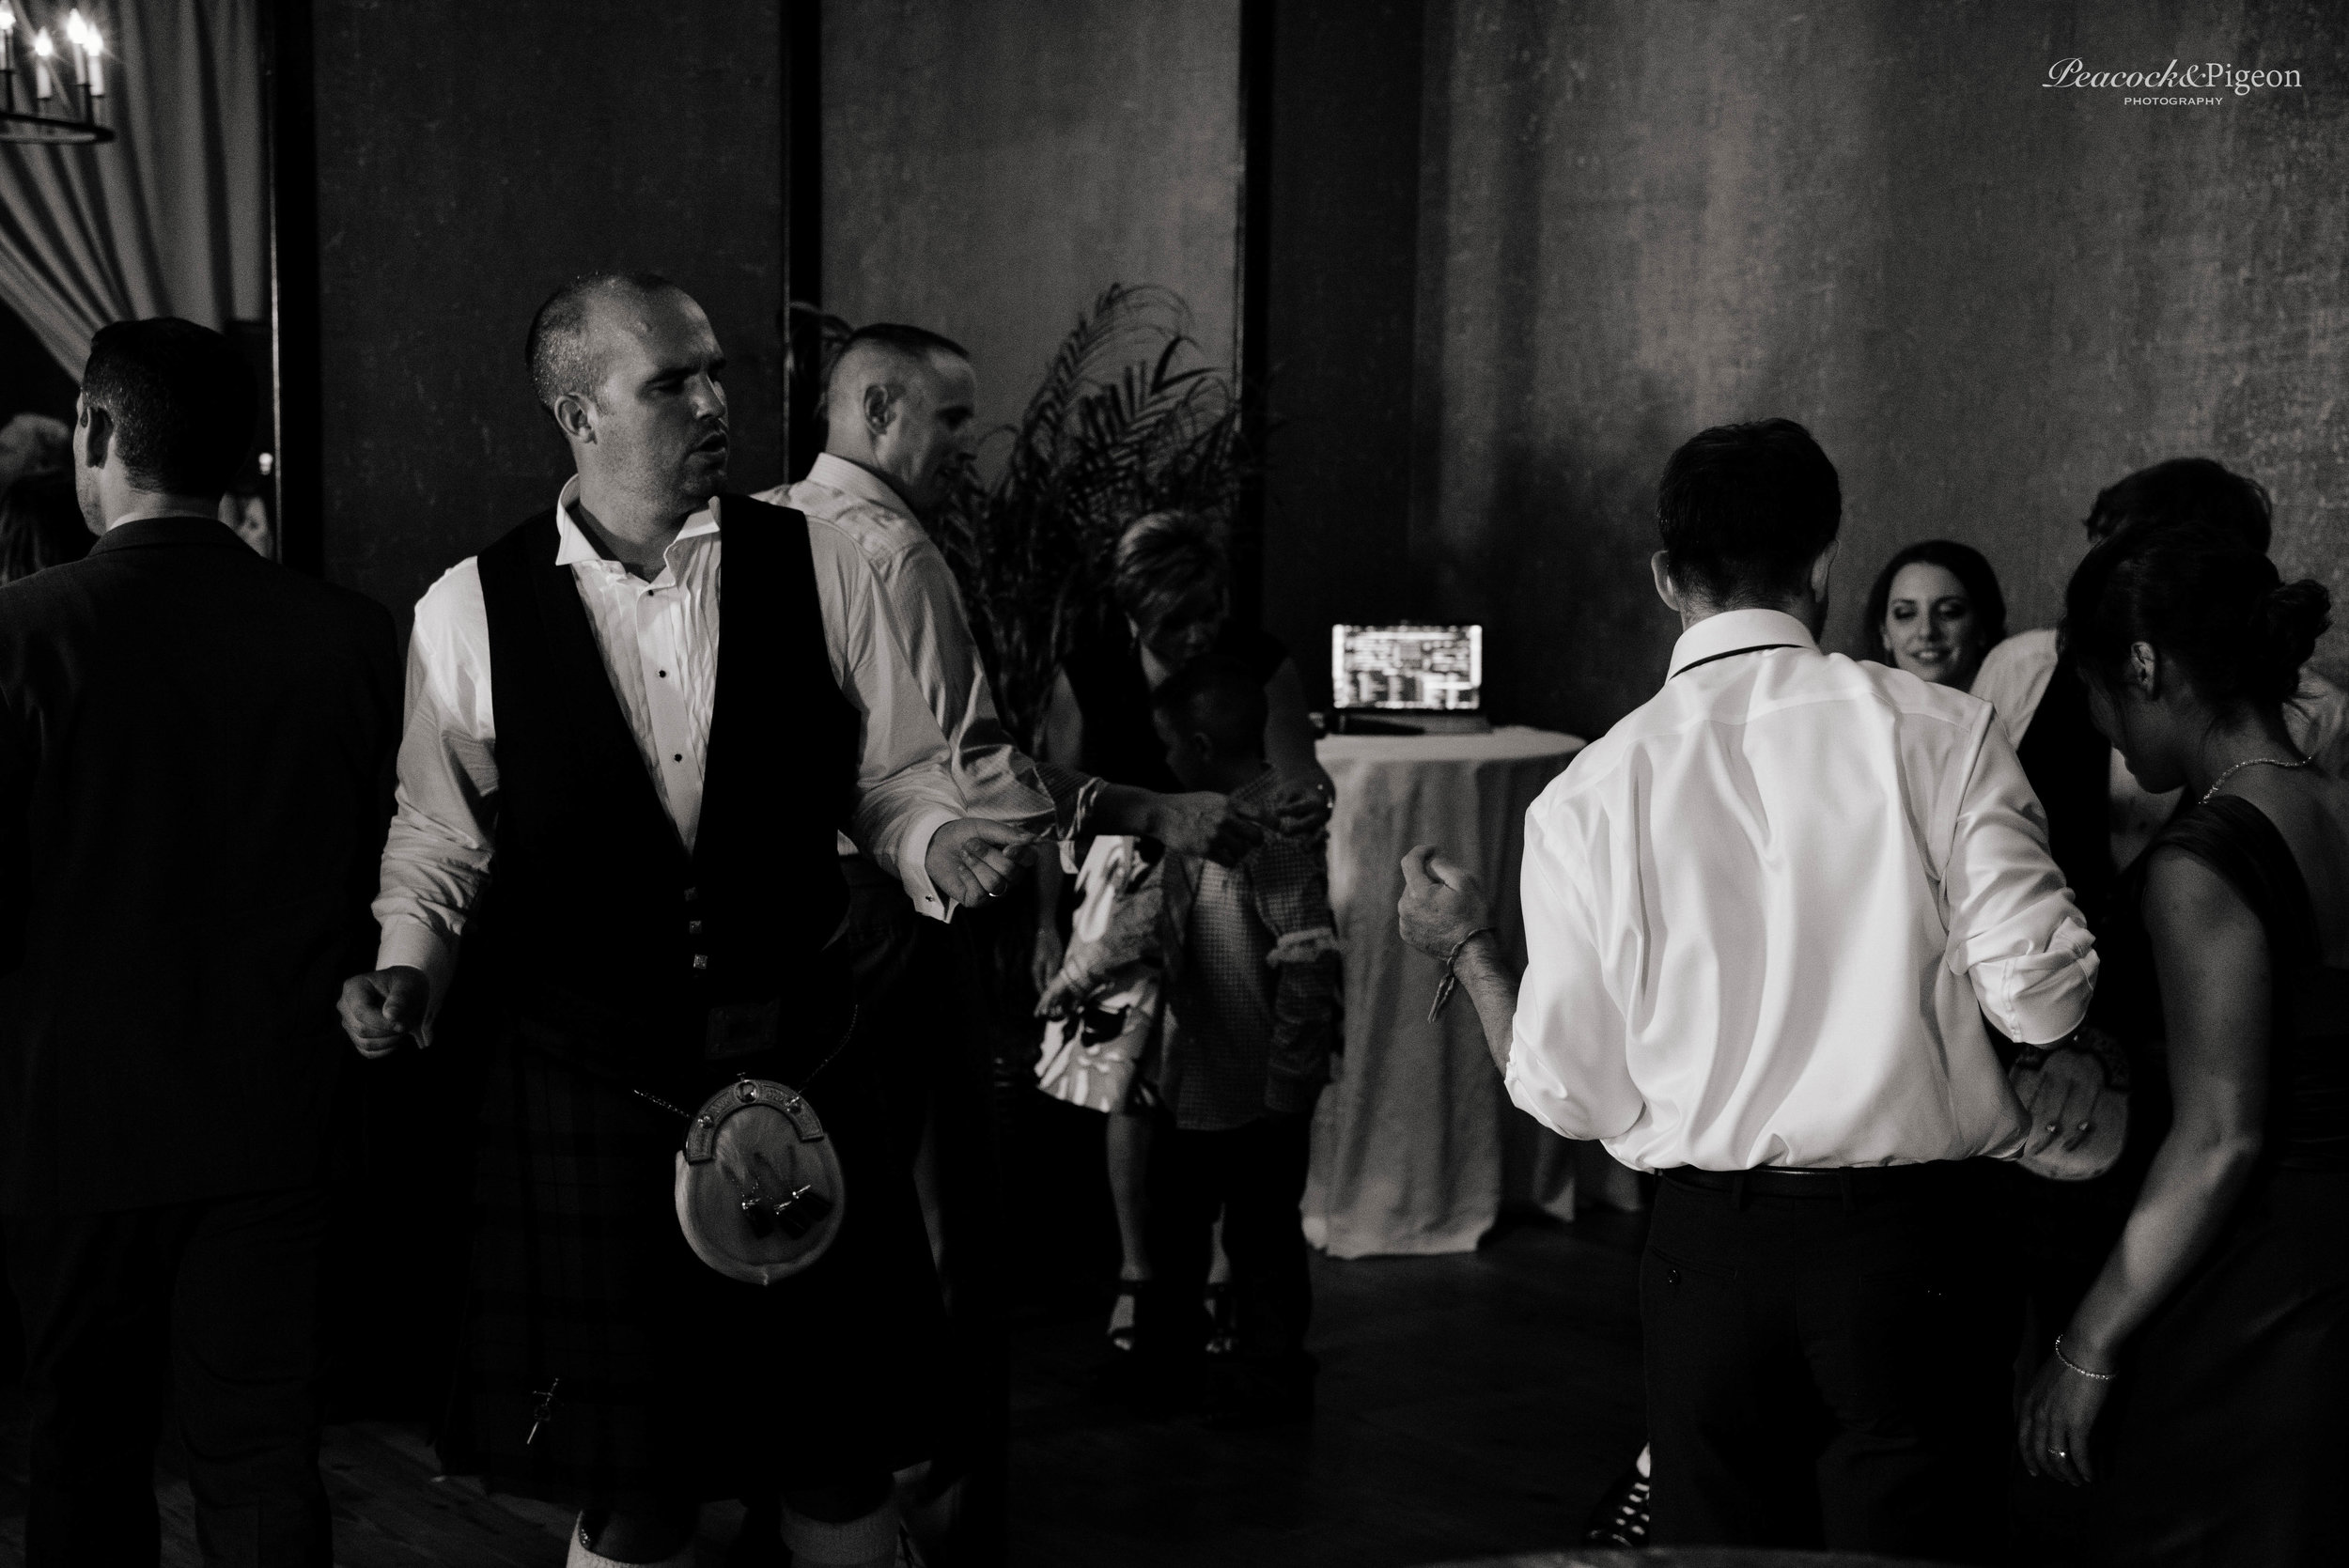 Callum_and_Sara's_Wedding_at_the_Cork_Factory_Hotel_in_Lancaster_Part_Eleven_Dancing_Continued_Black_and_White_Watermarked-41.jpg